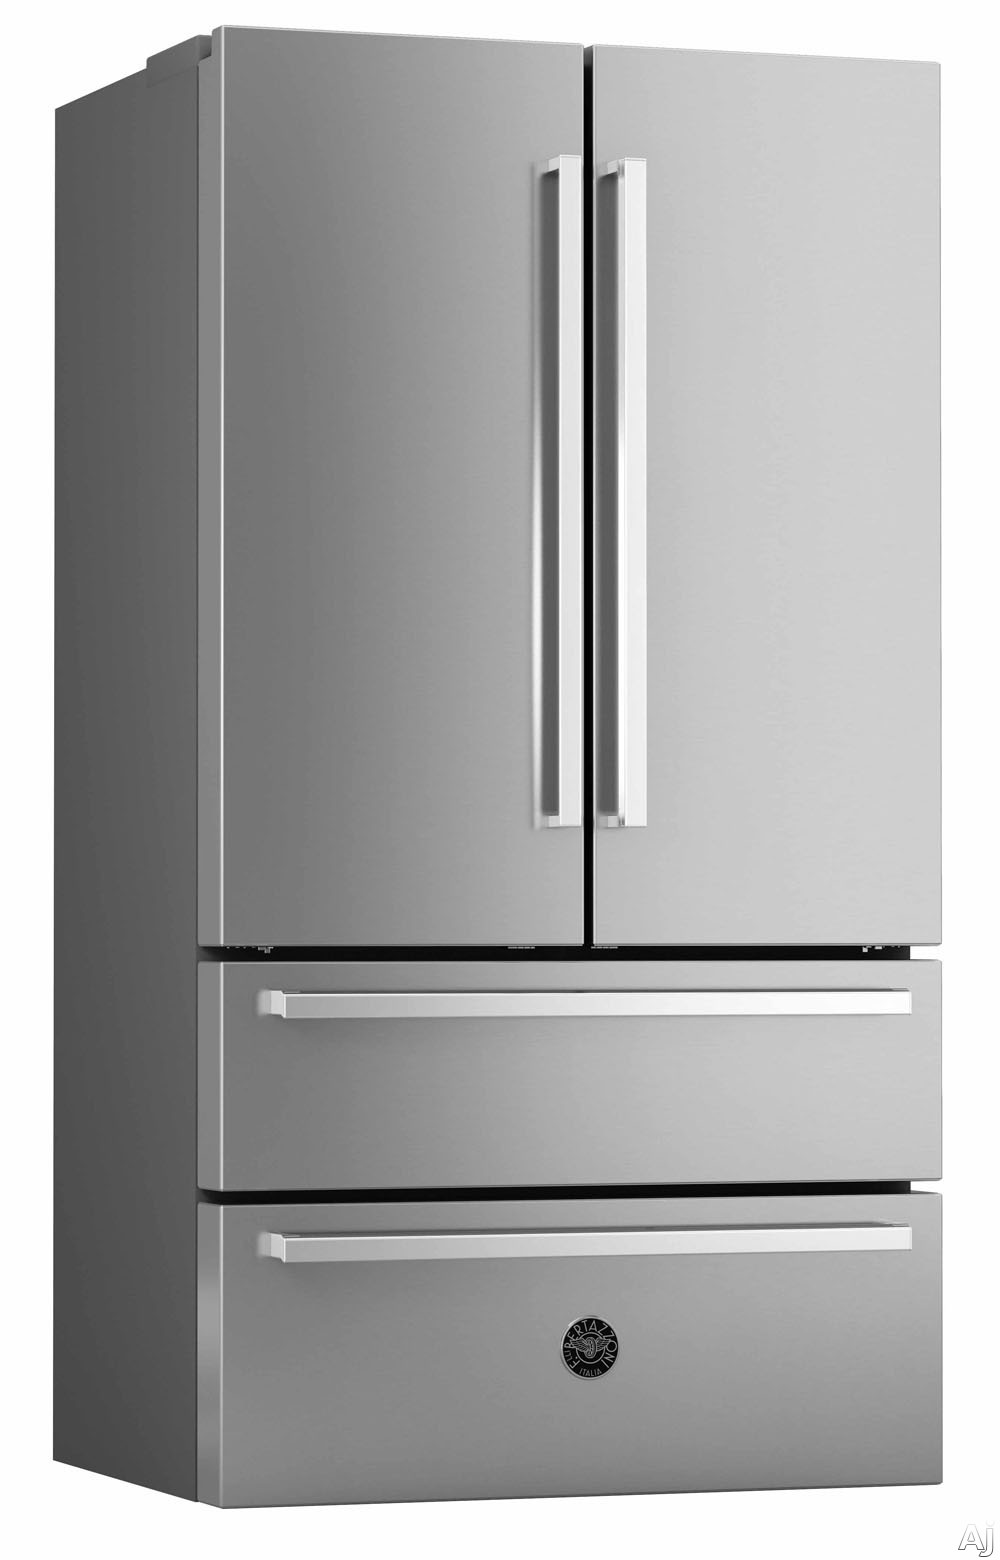 Picture for category Refrigerators